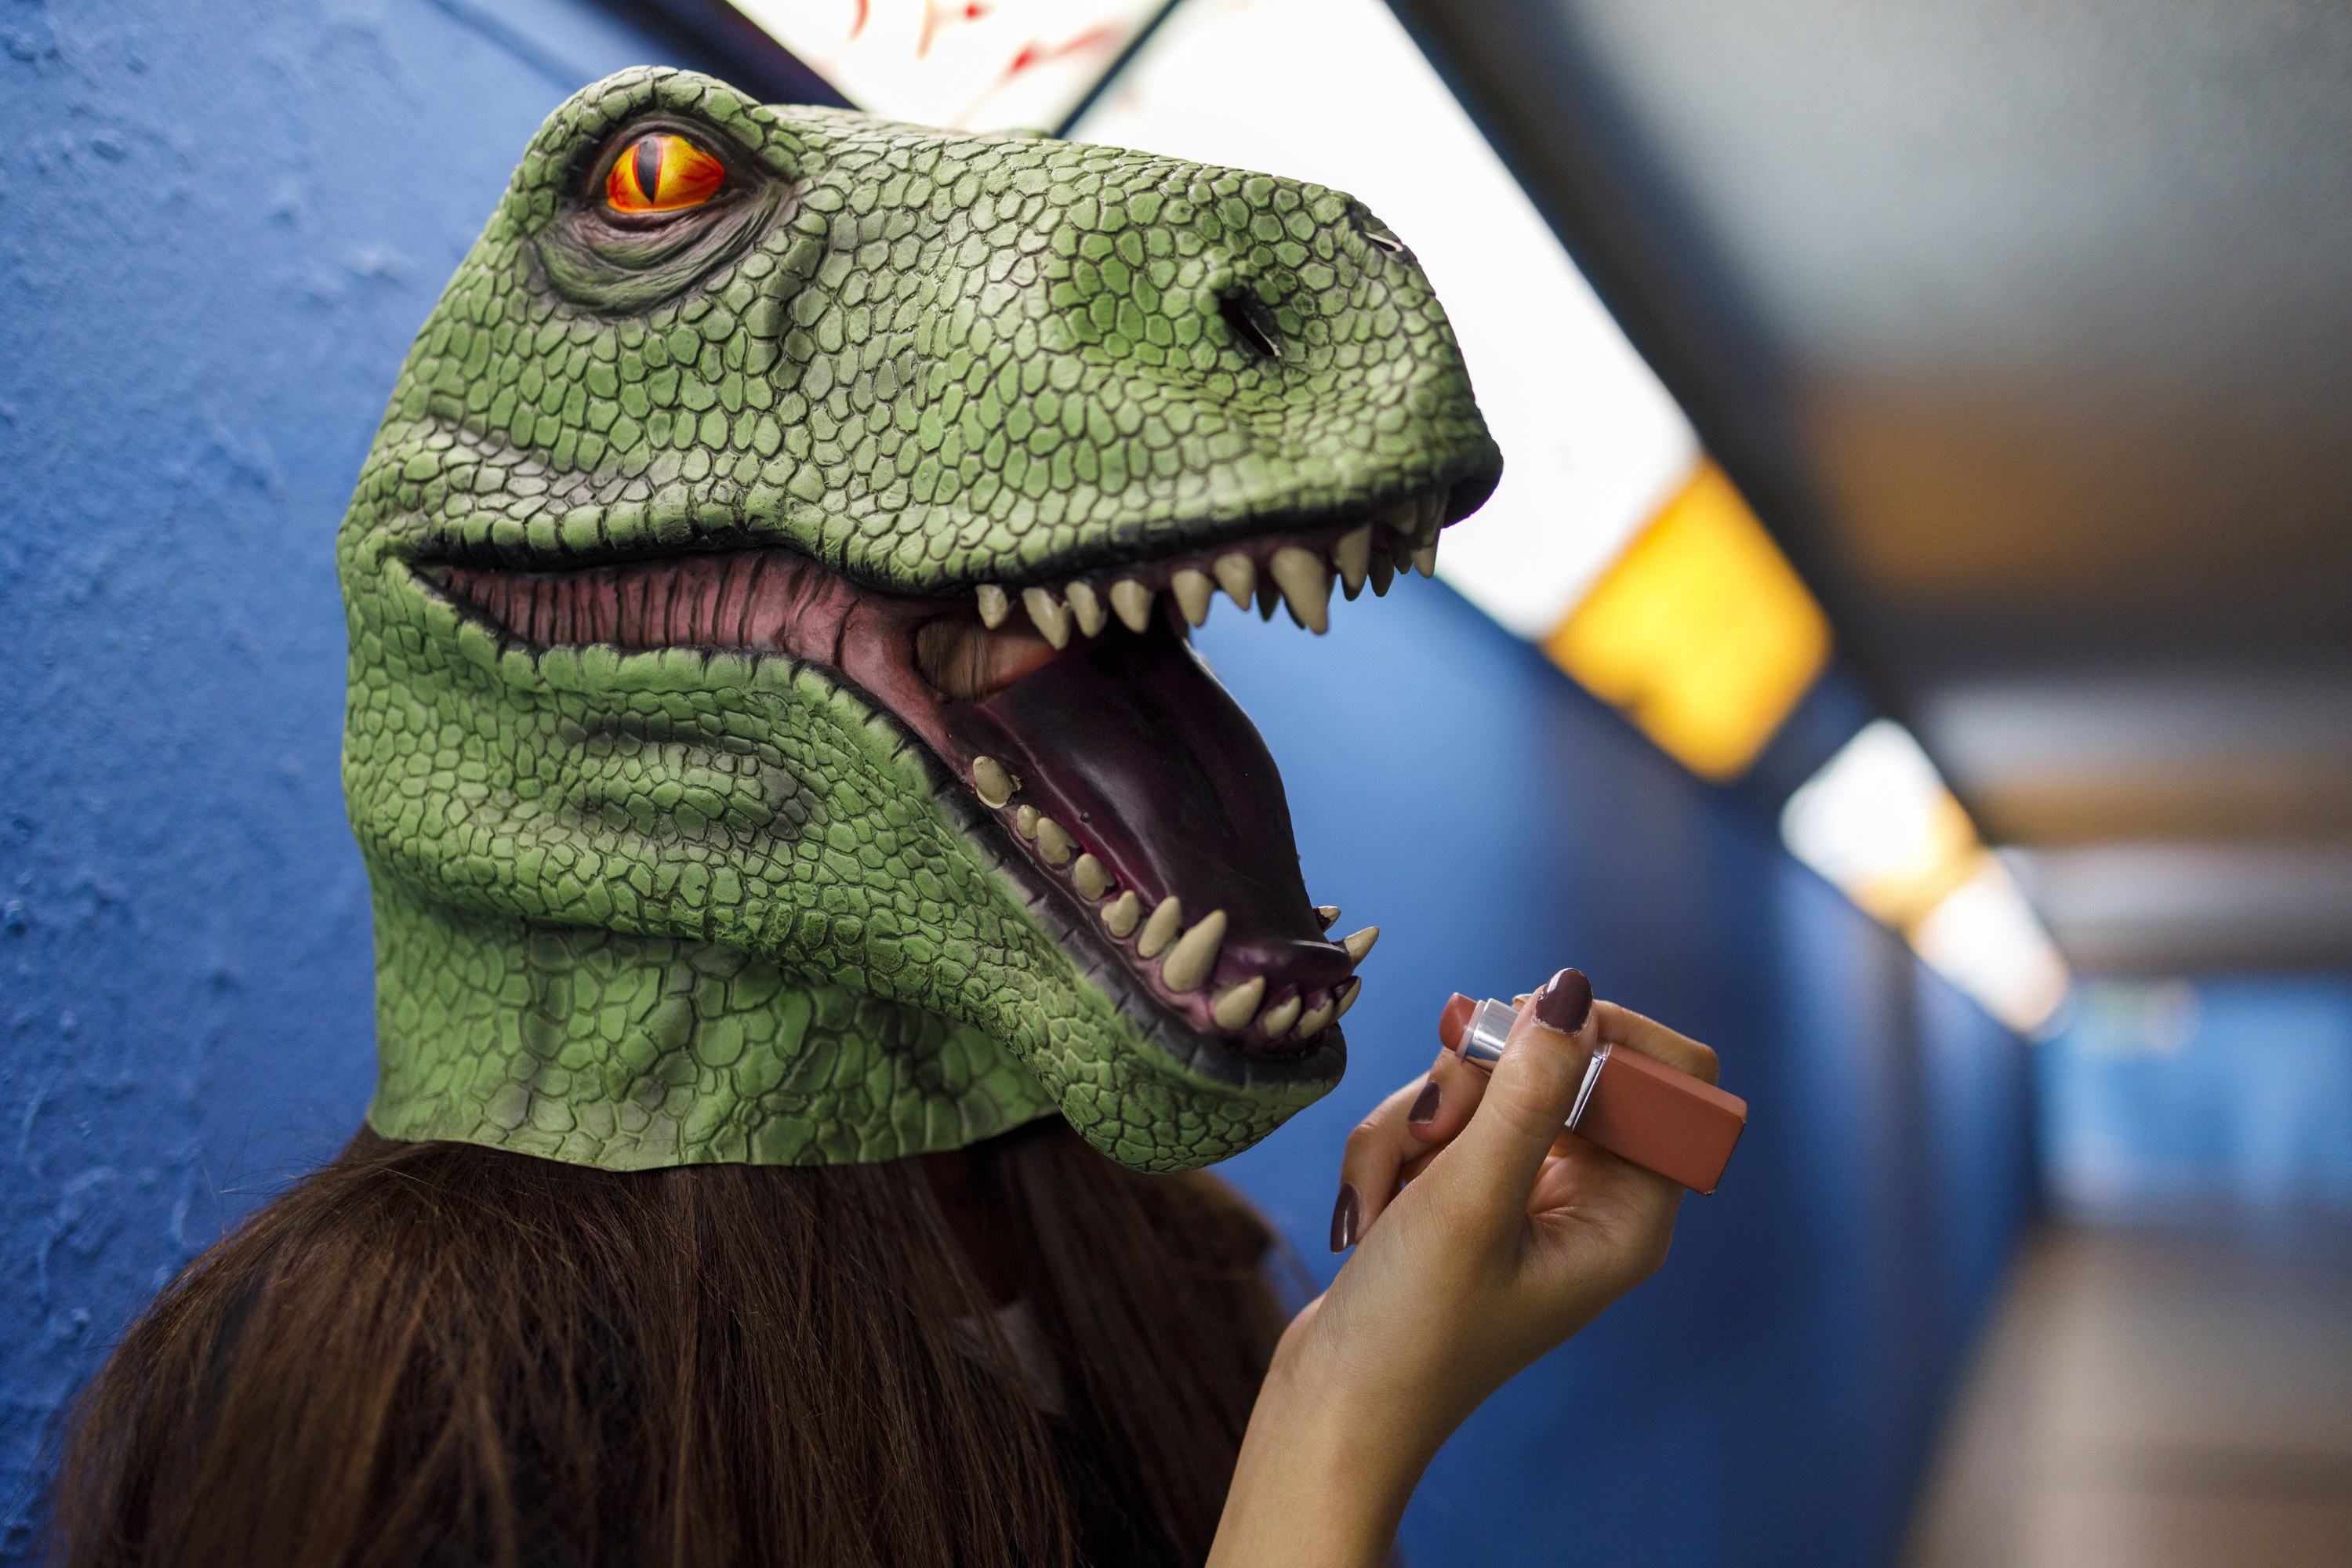 Someone wearing a dinosaur head and holding up a tube of lipstick to their lips